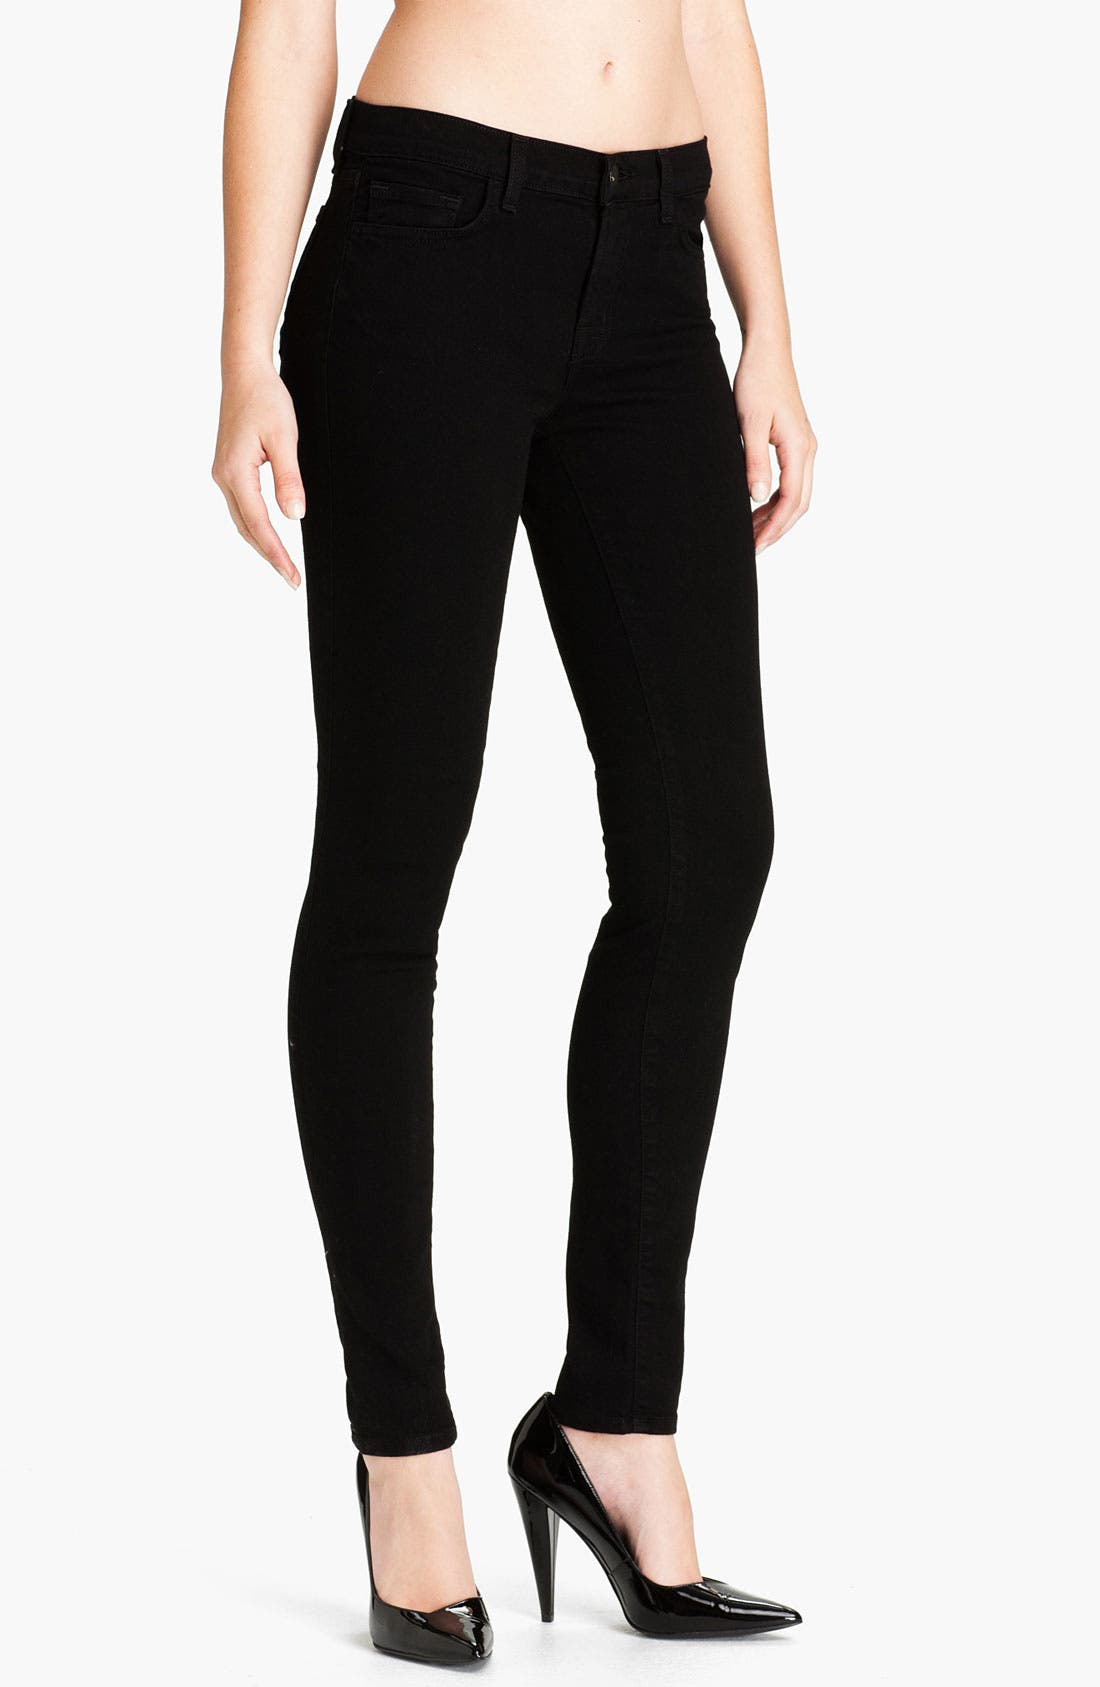 Alternate Image 1 Selected - J Brand Skinny Stretch Ankle Jeans (Shadow)